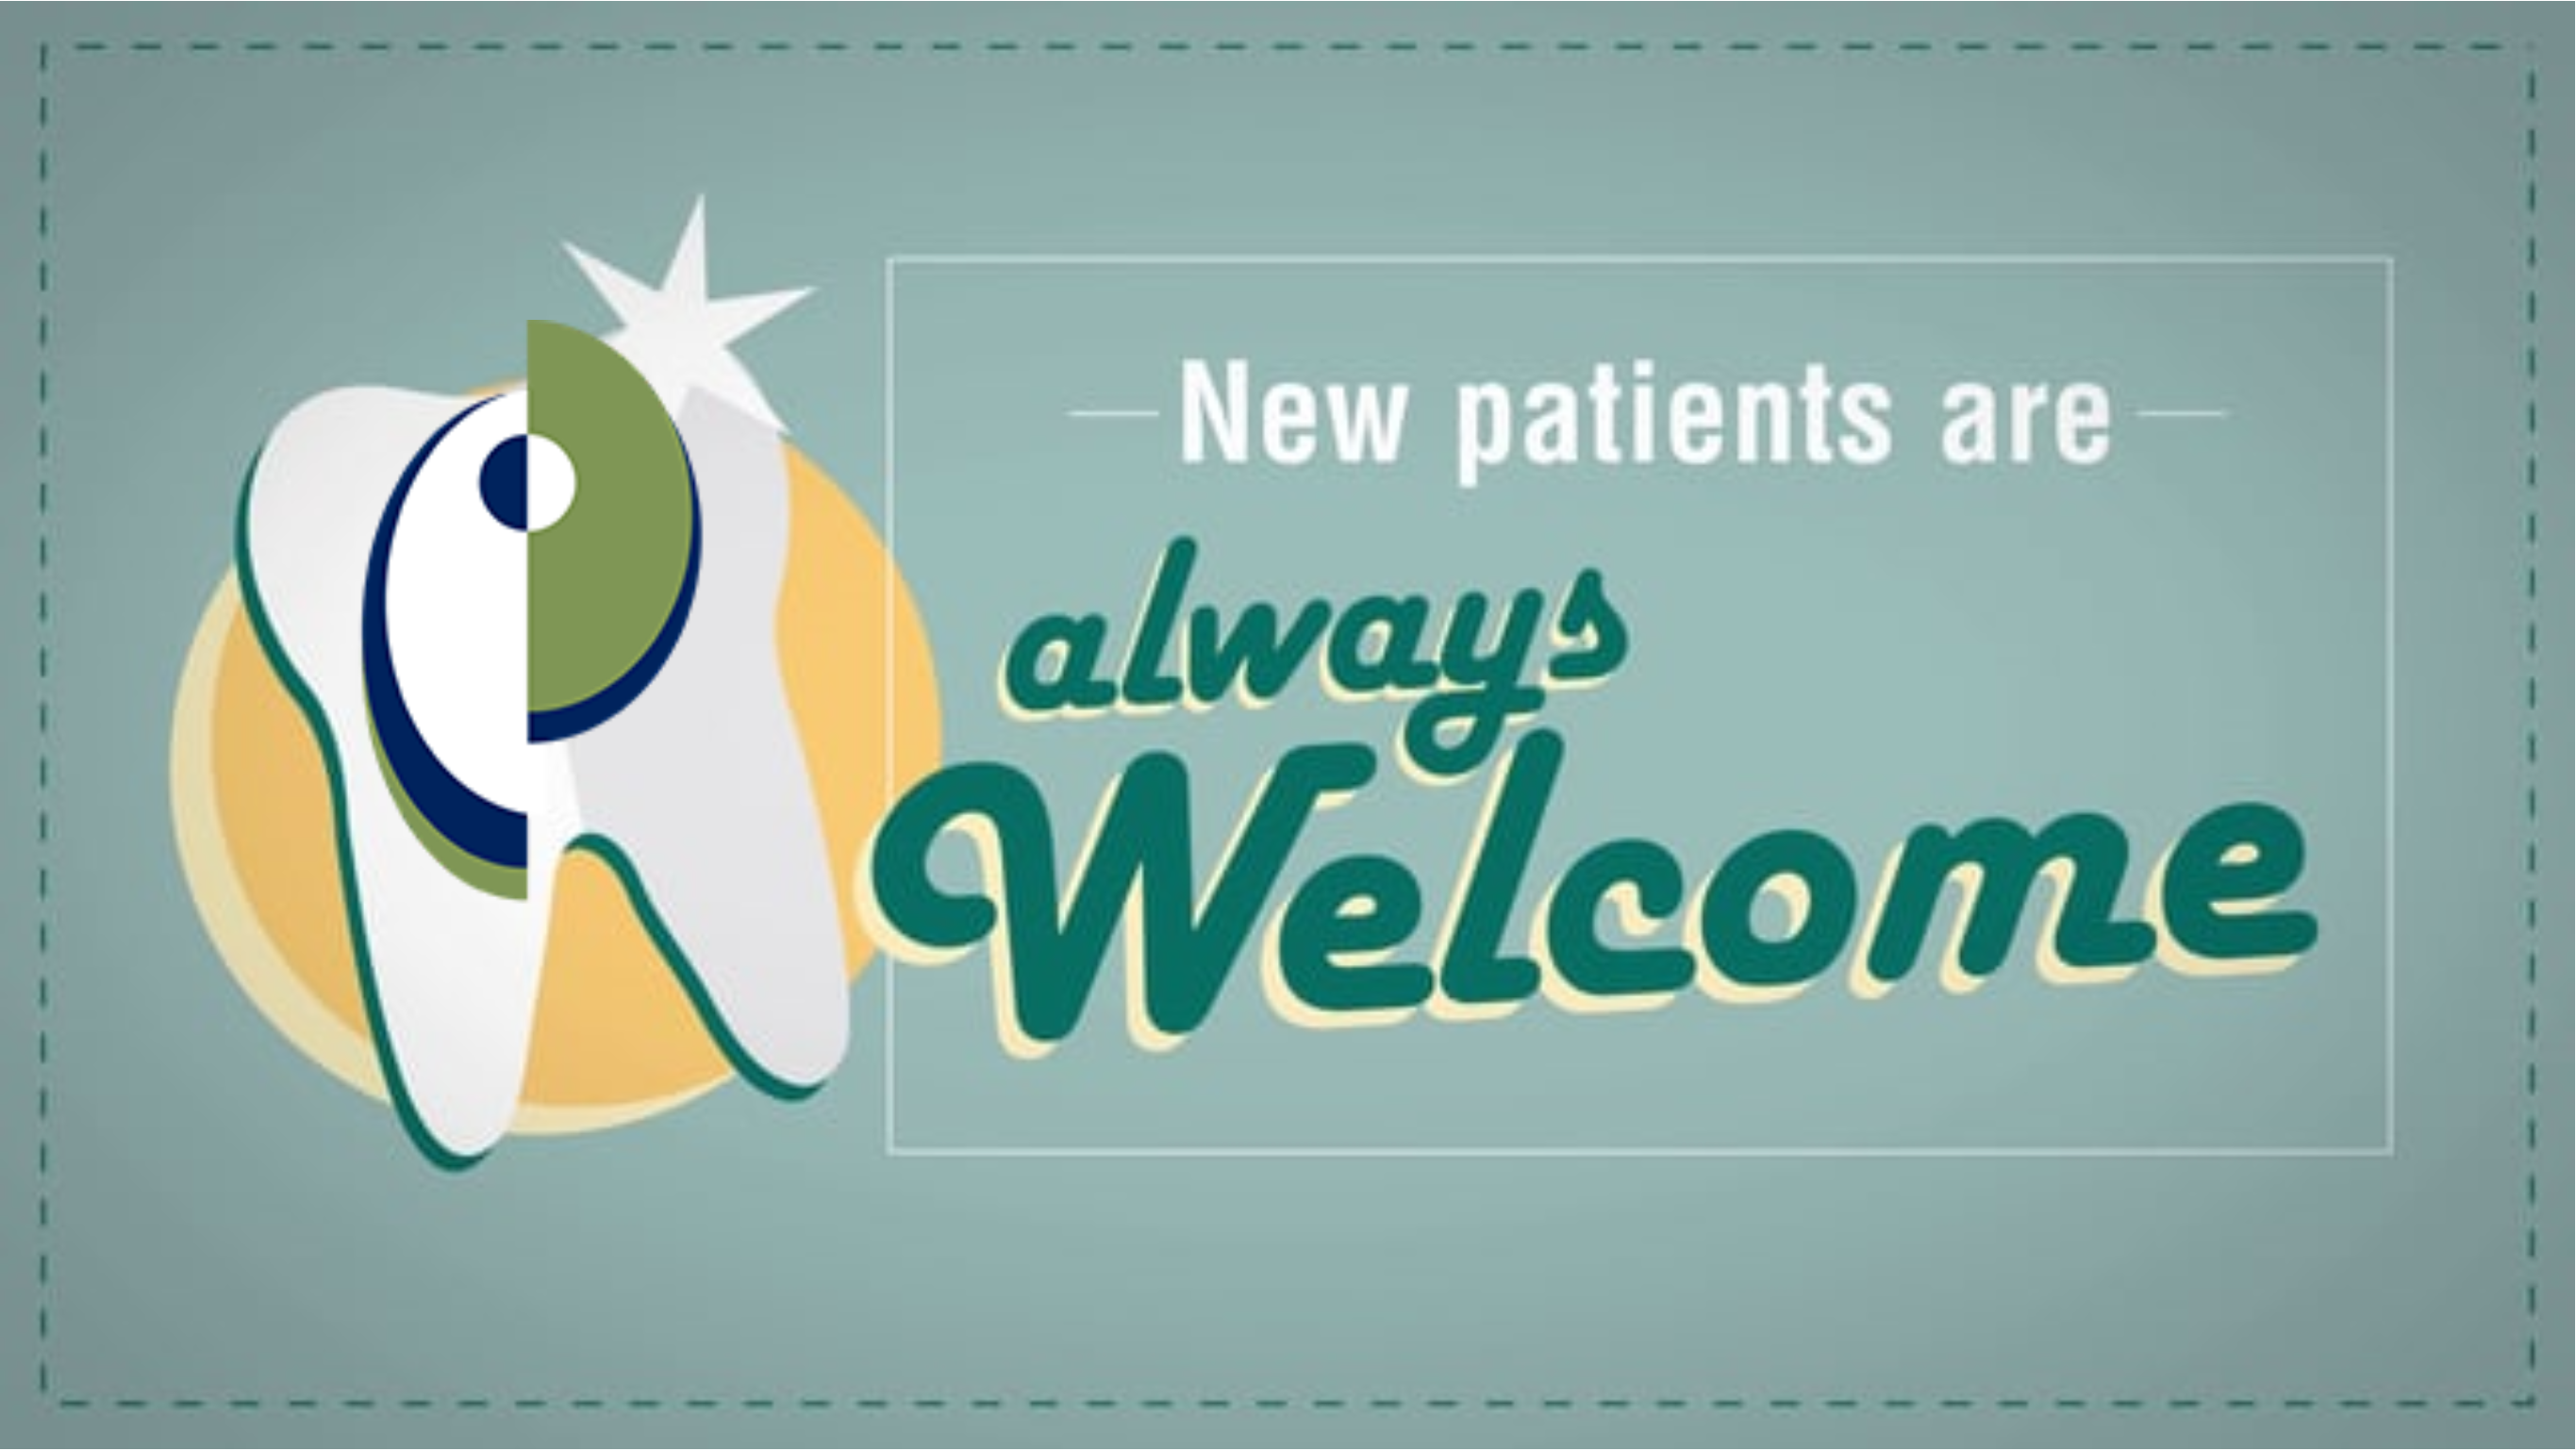 New patients are always welcome at periodontal associates the dental implant team in aurora colorado serving denver